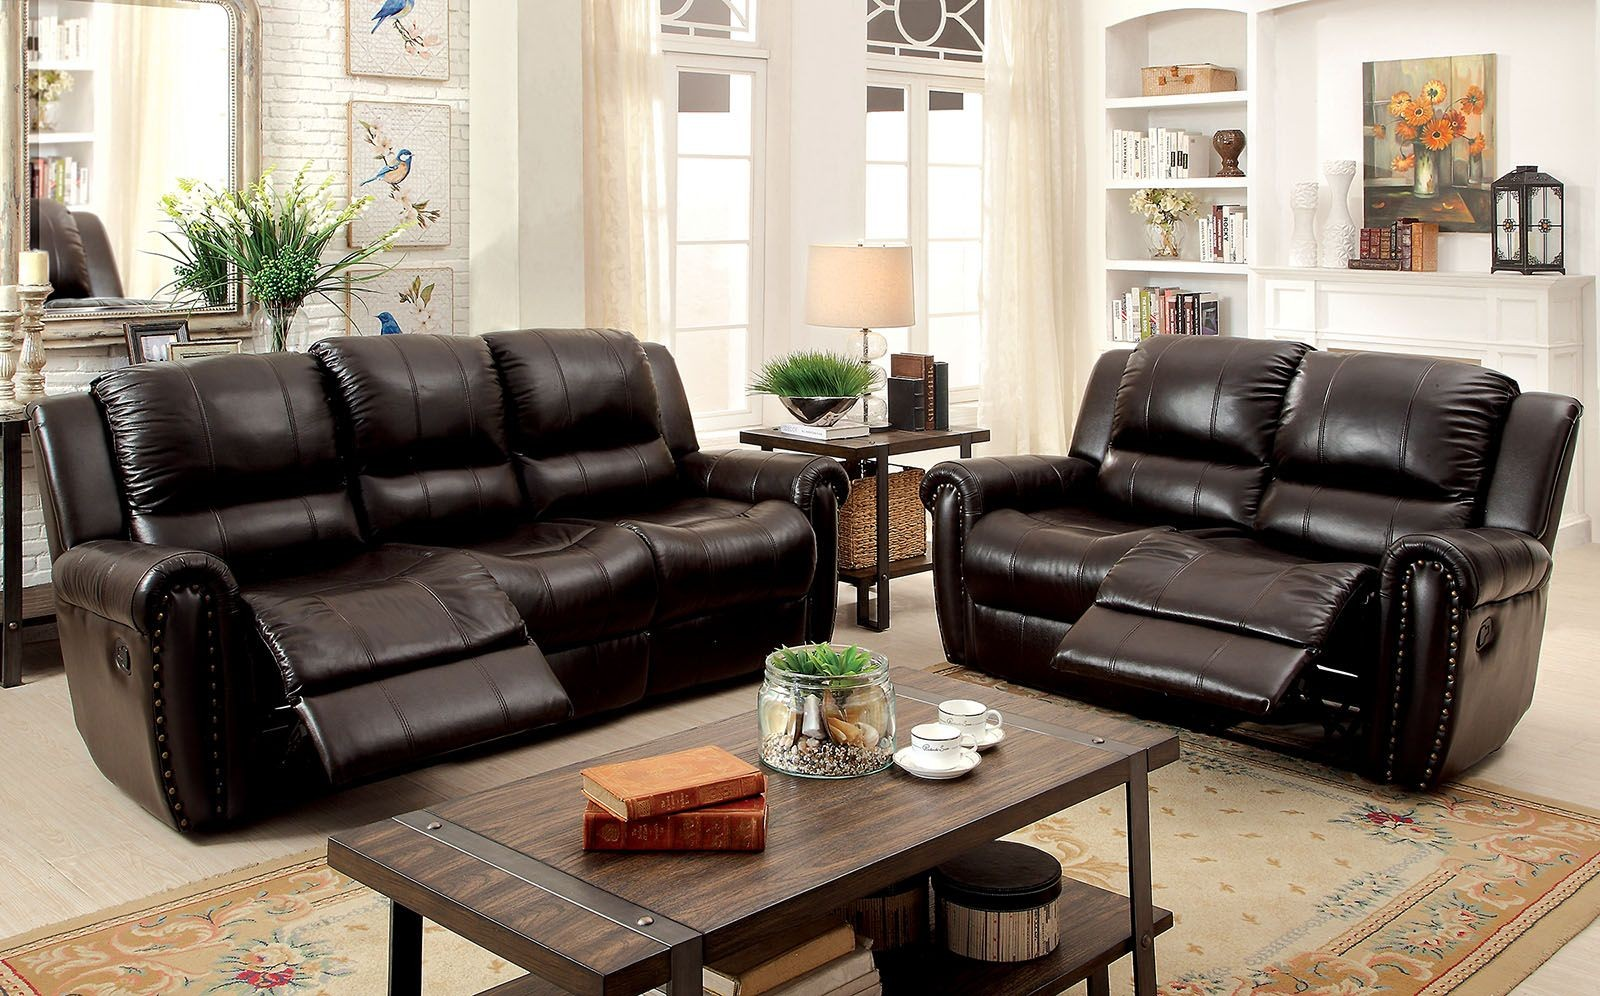 Foxboro Leather Reclining Living Room Set CM6909SF Furniture Of America